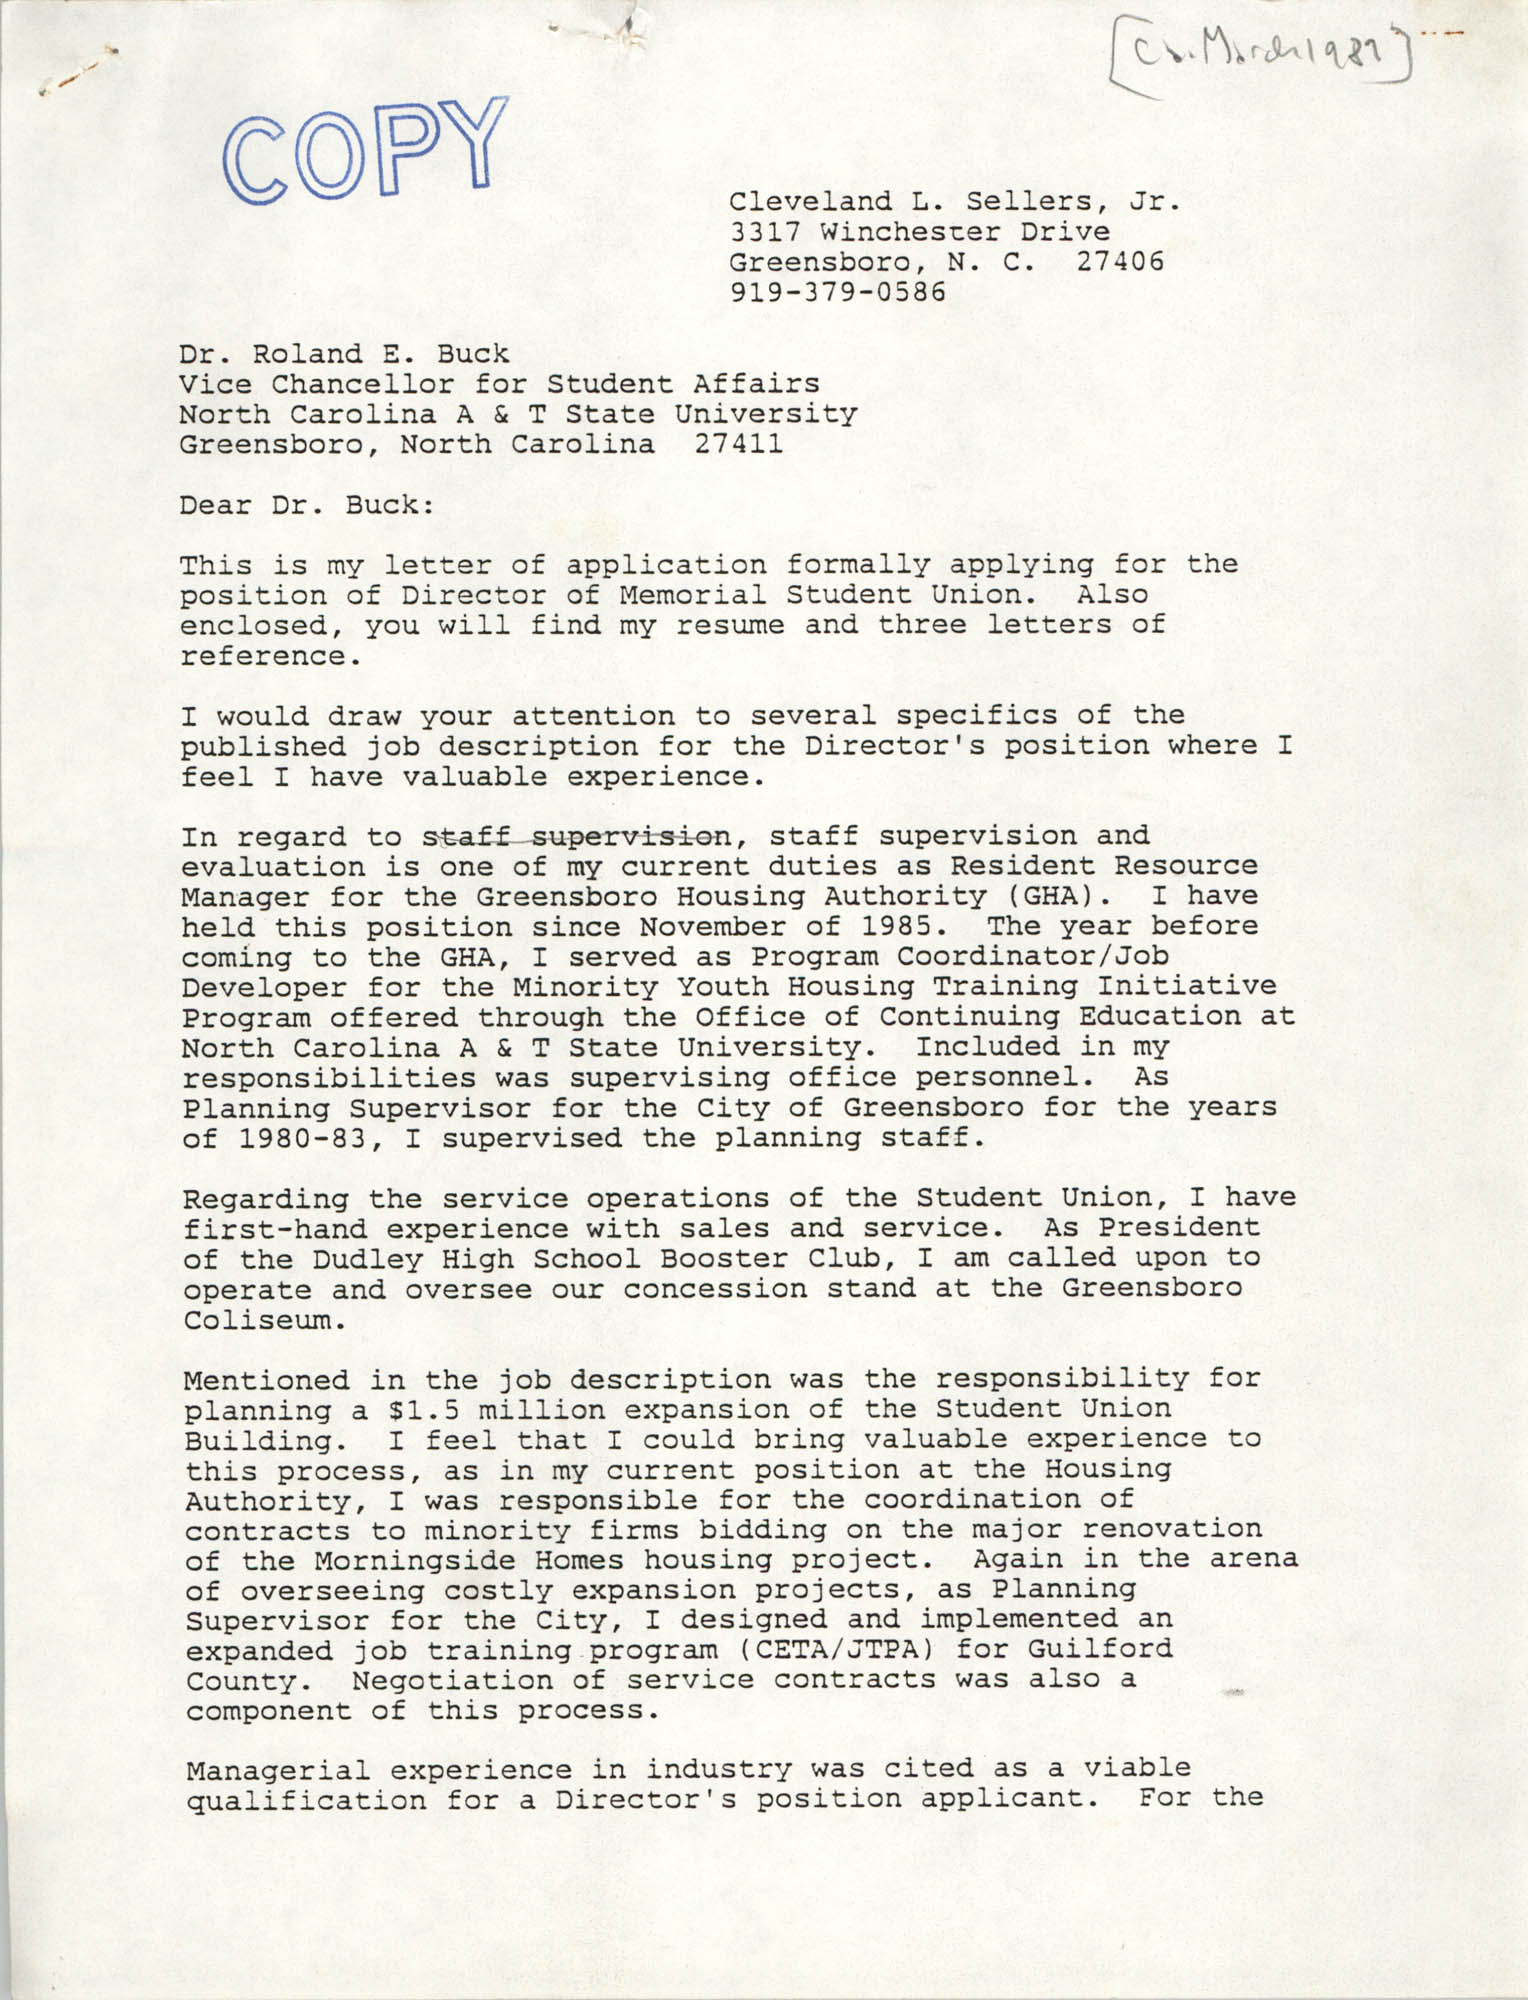 Letter from Cleveland Sellers to Roland E. Buck, March 1989